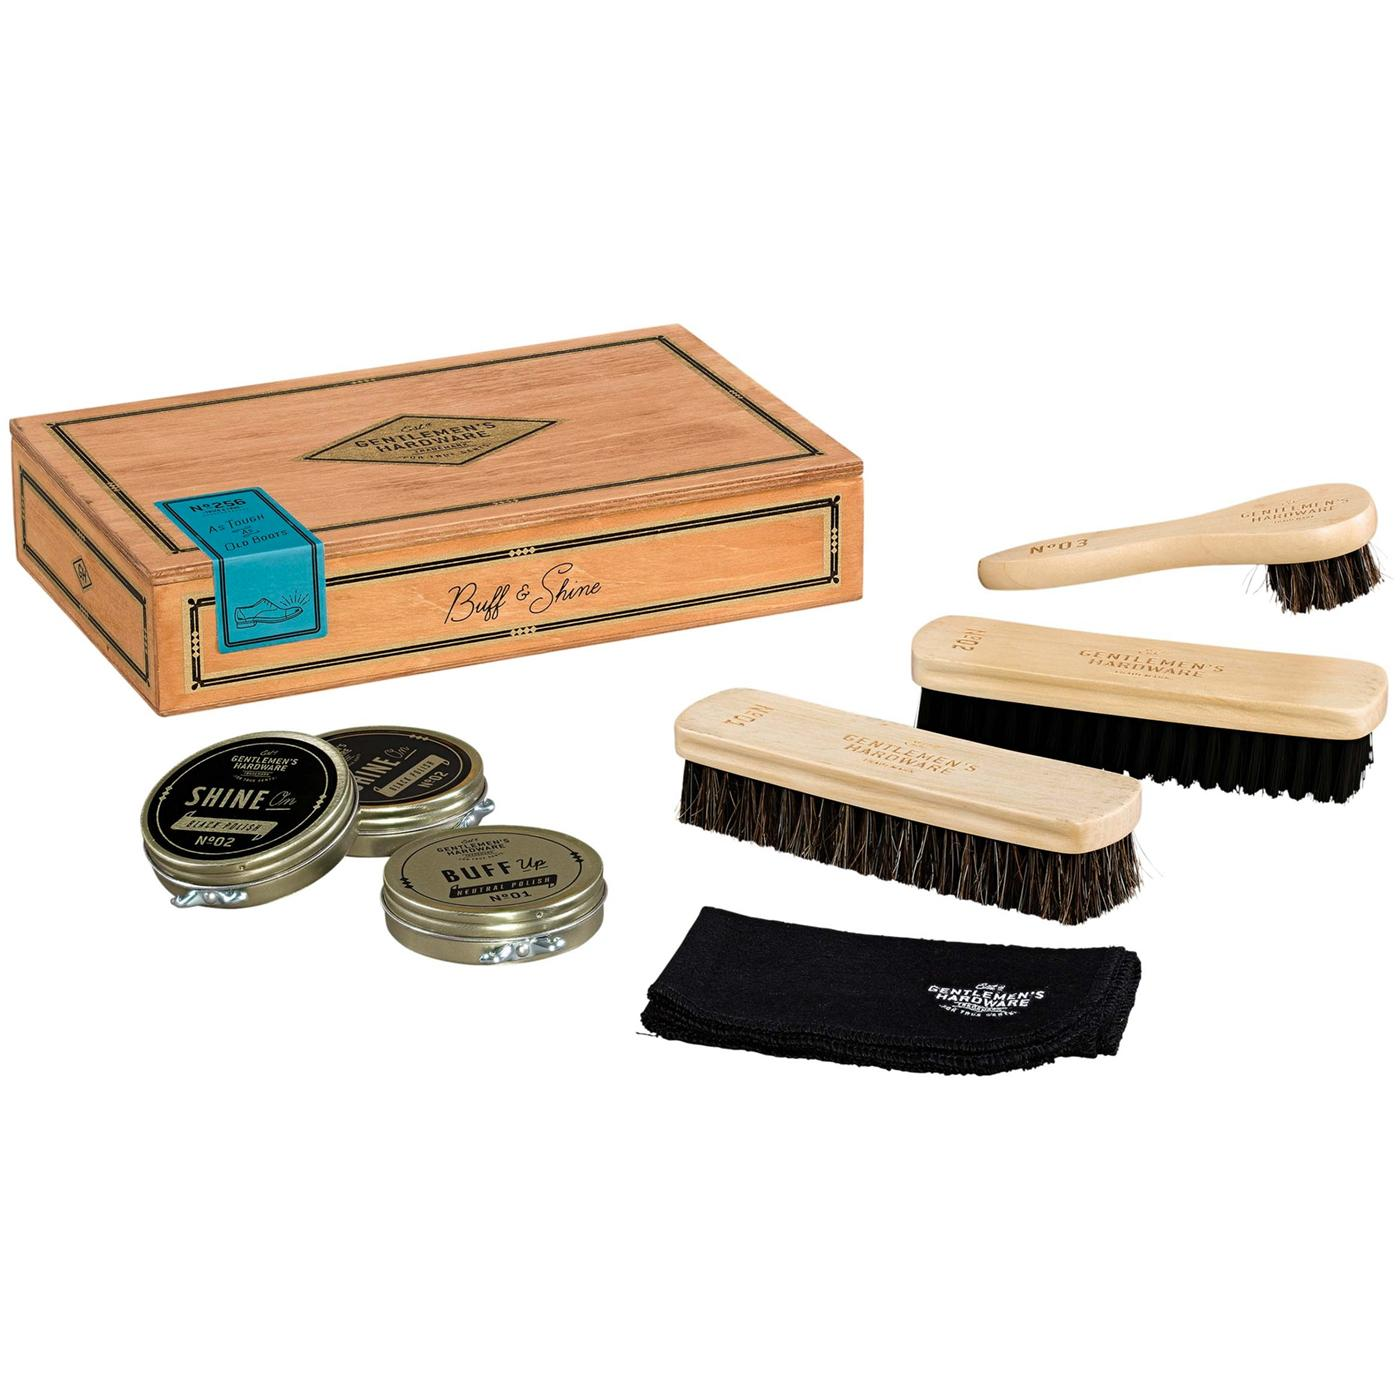 GENTLEMENS HARDWARE Retro Cigar Box Shoe Shine Kit